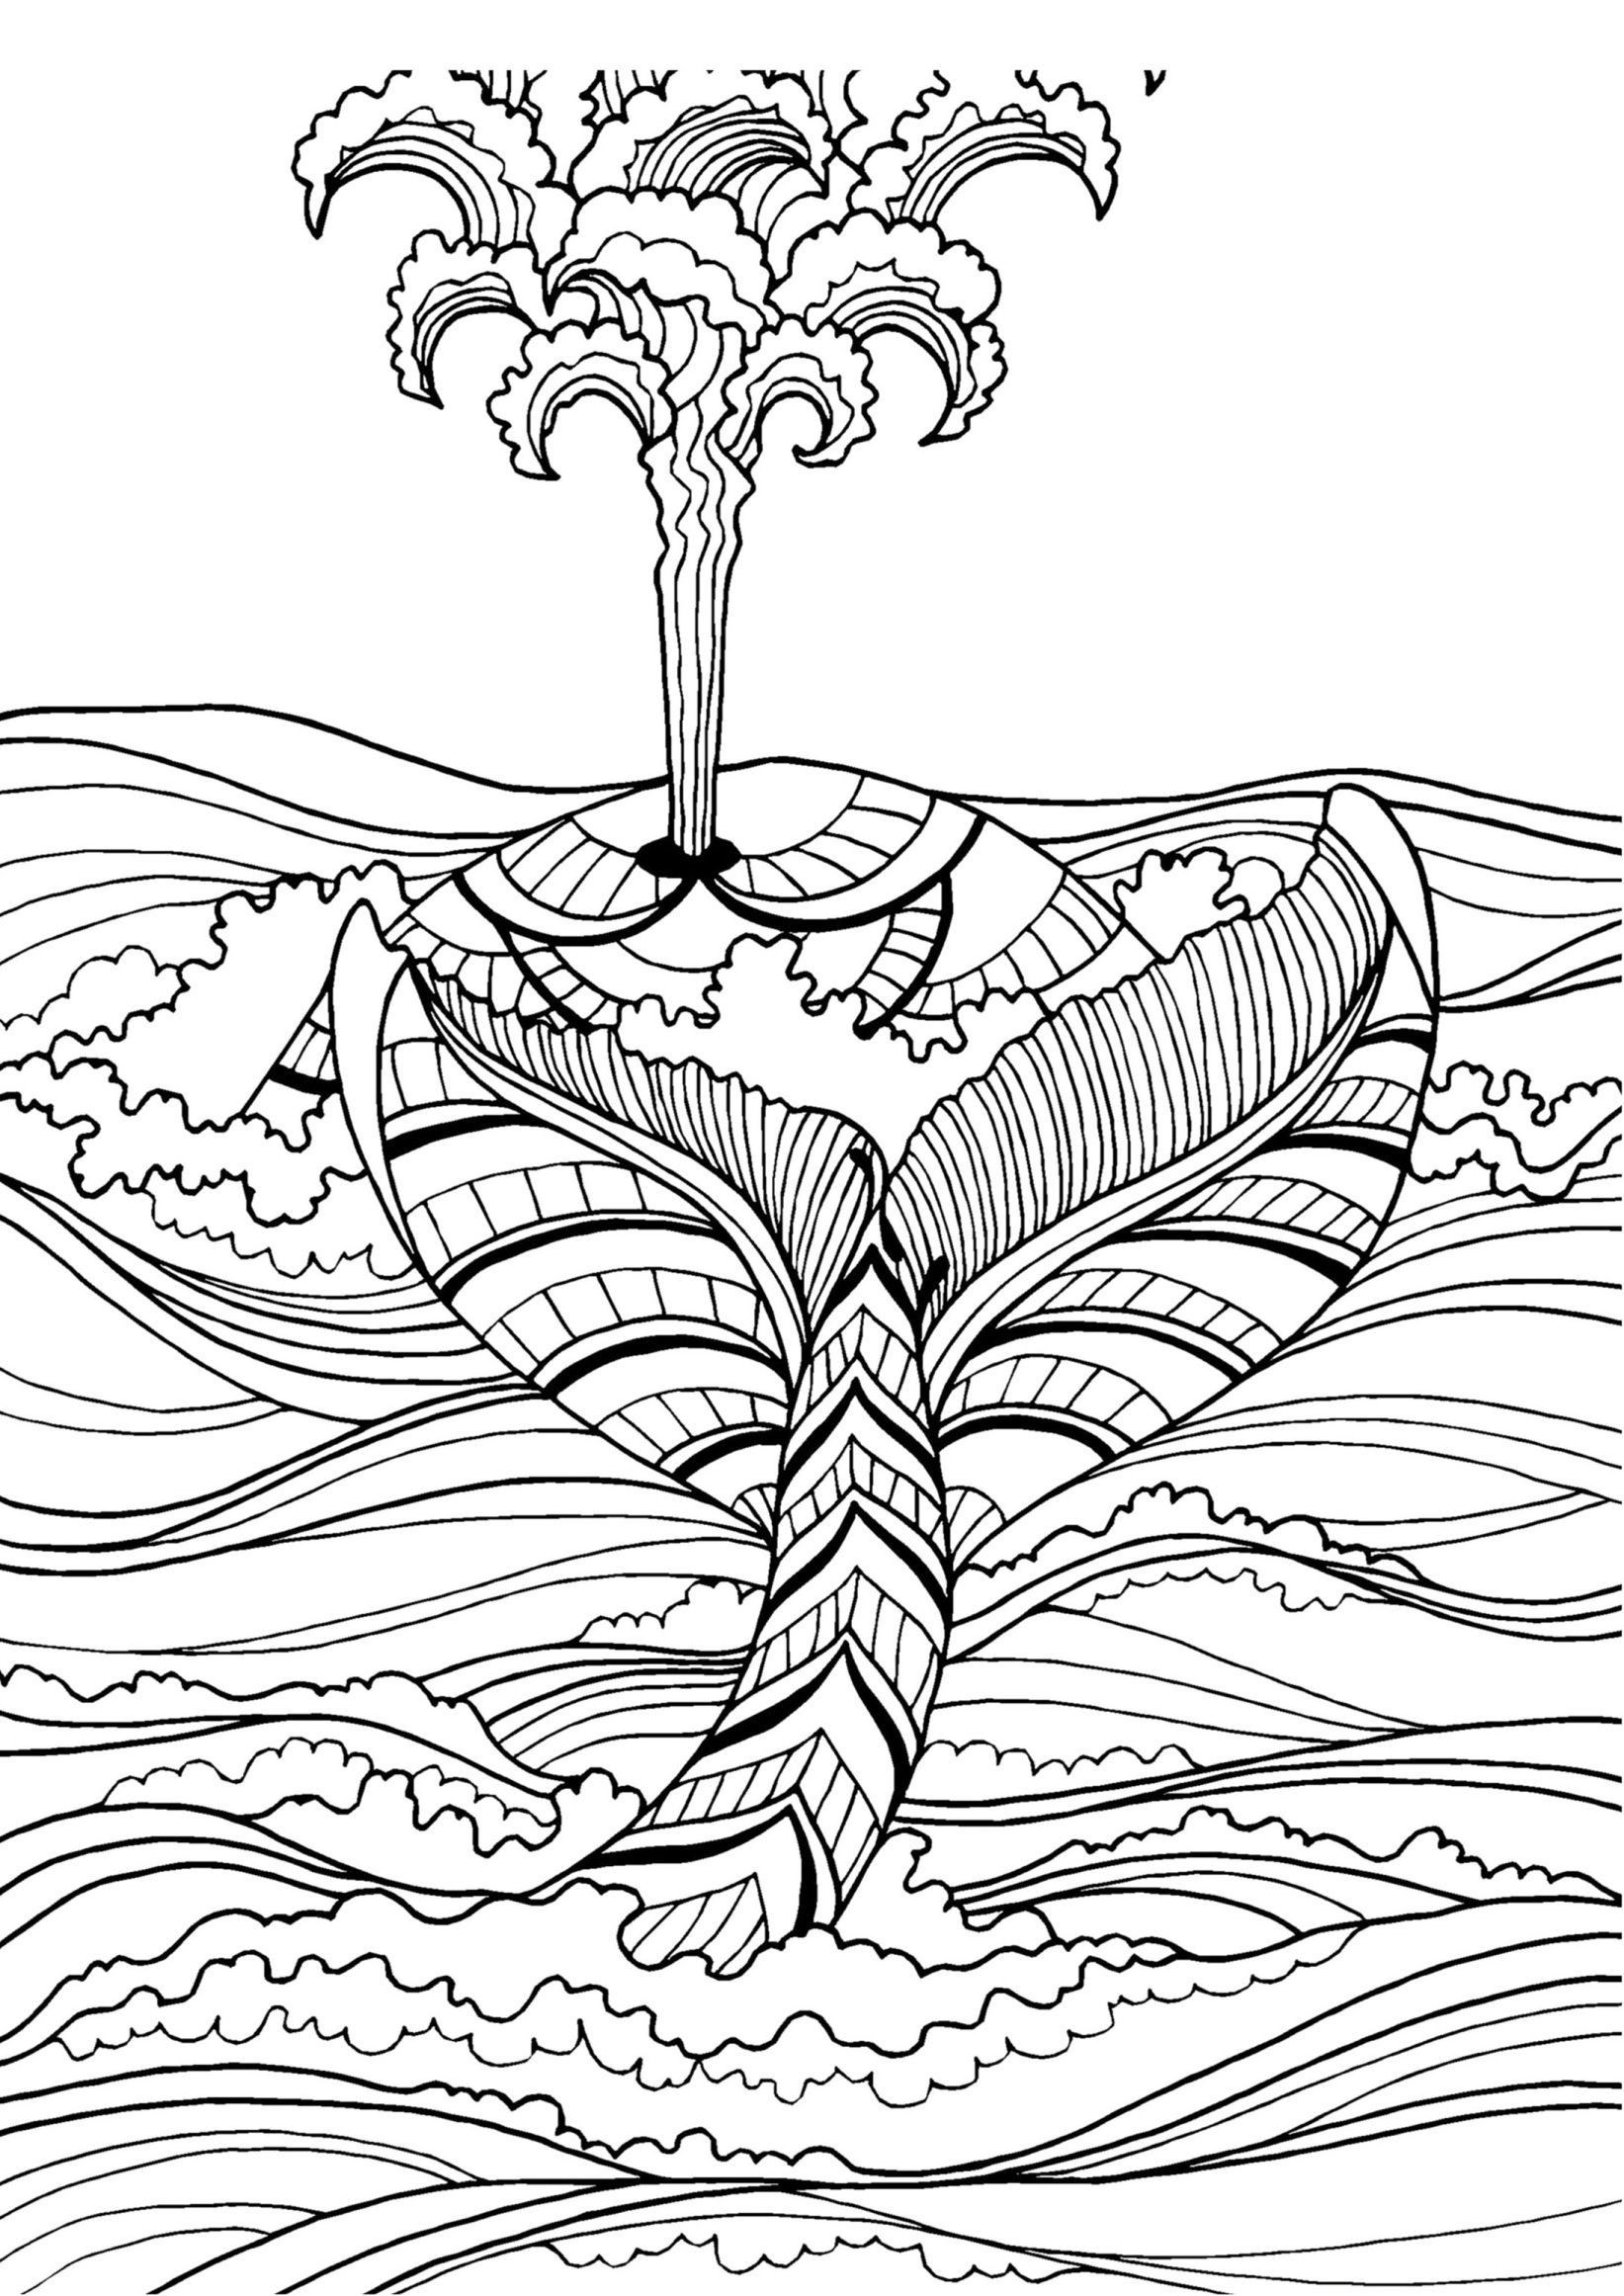 detailed dolphin coloring pages dolphin pictures to color bilscreen pages detailed dolphin coloring